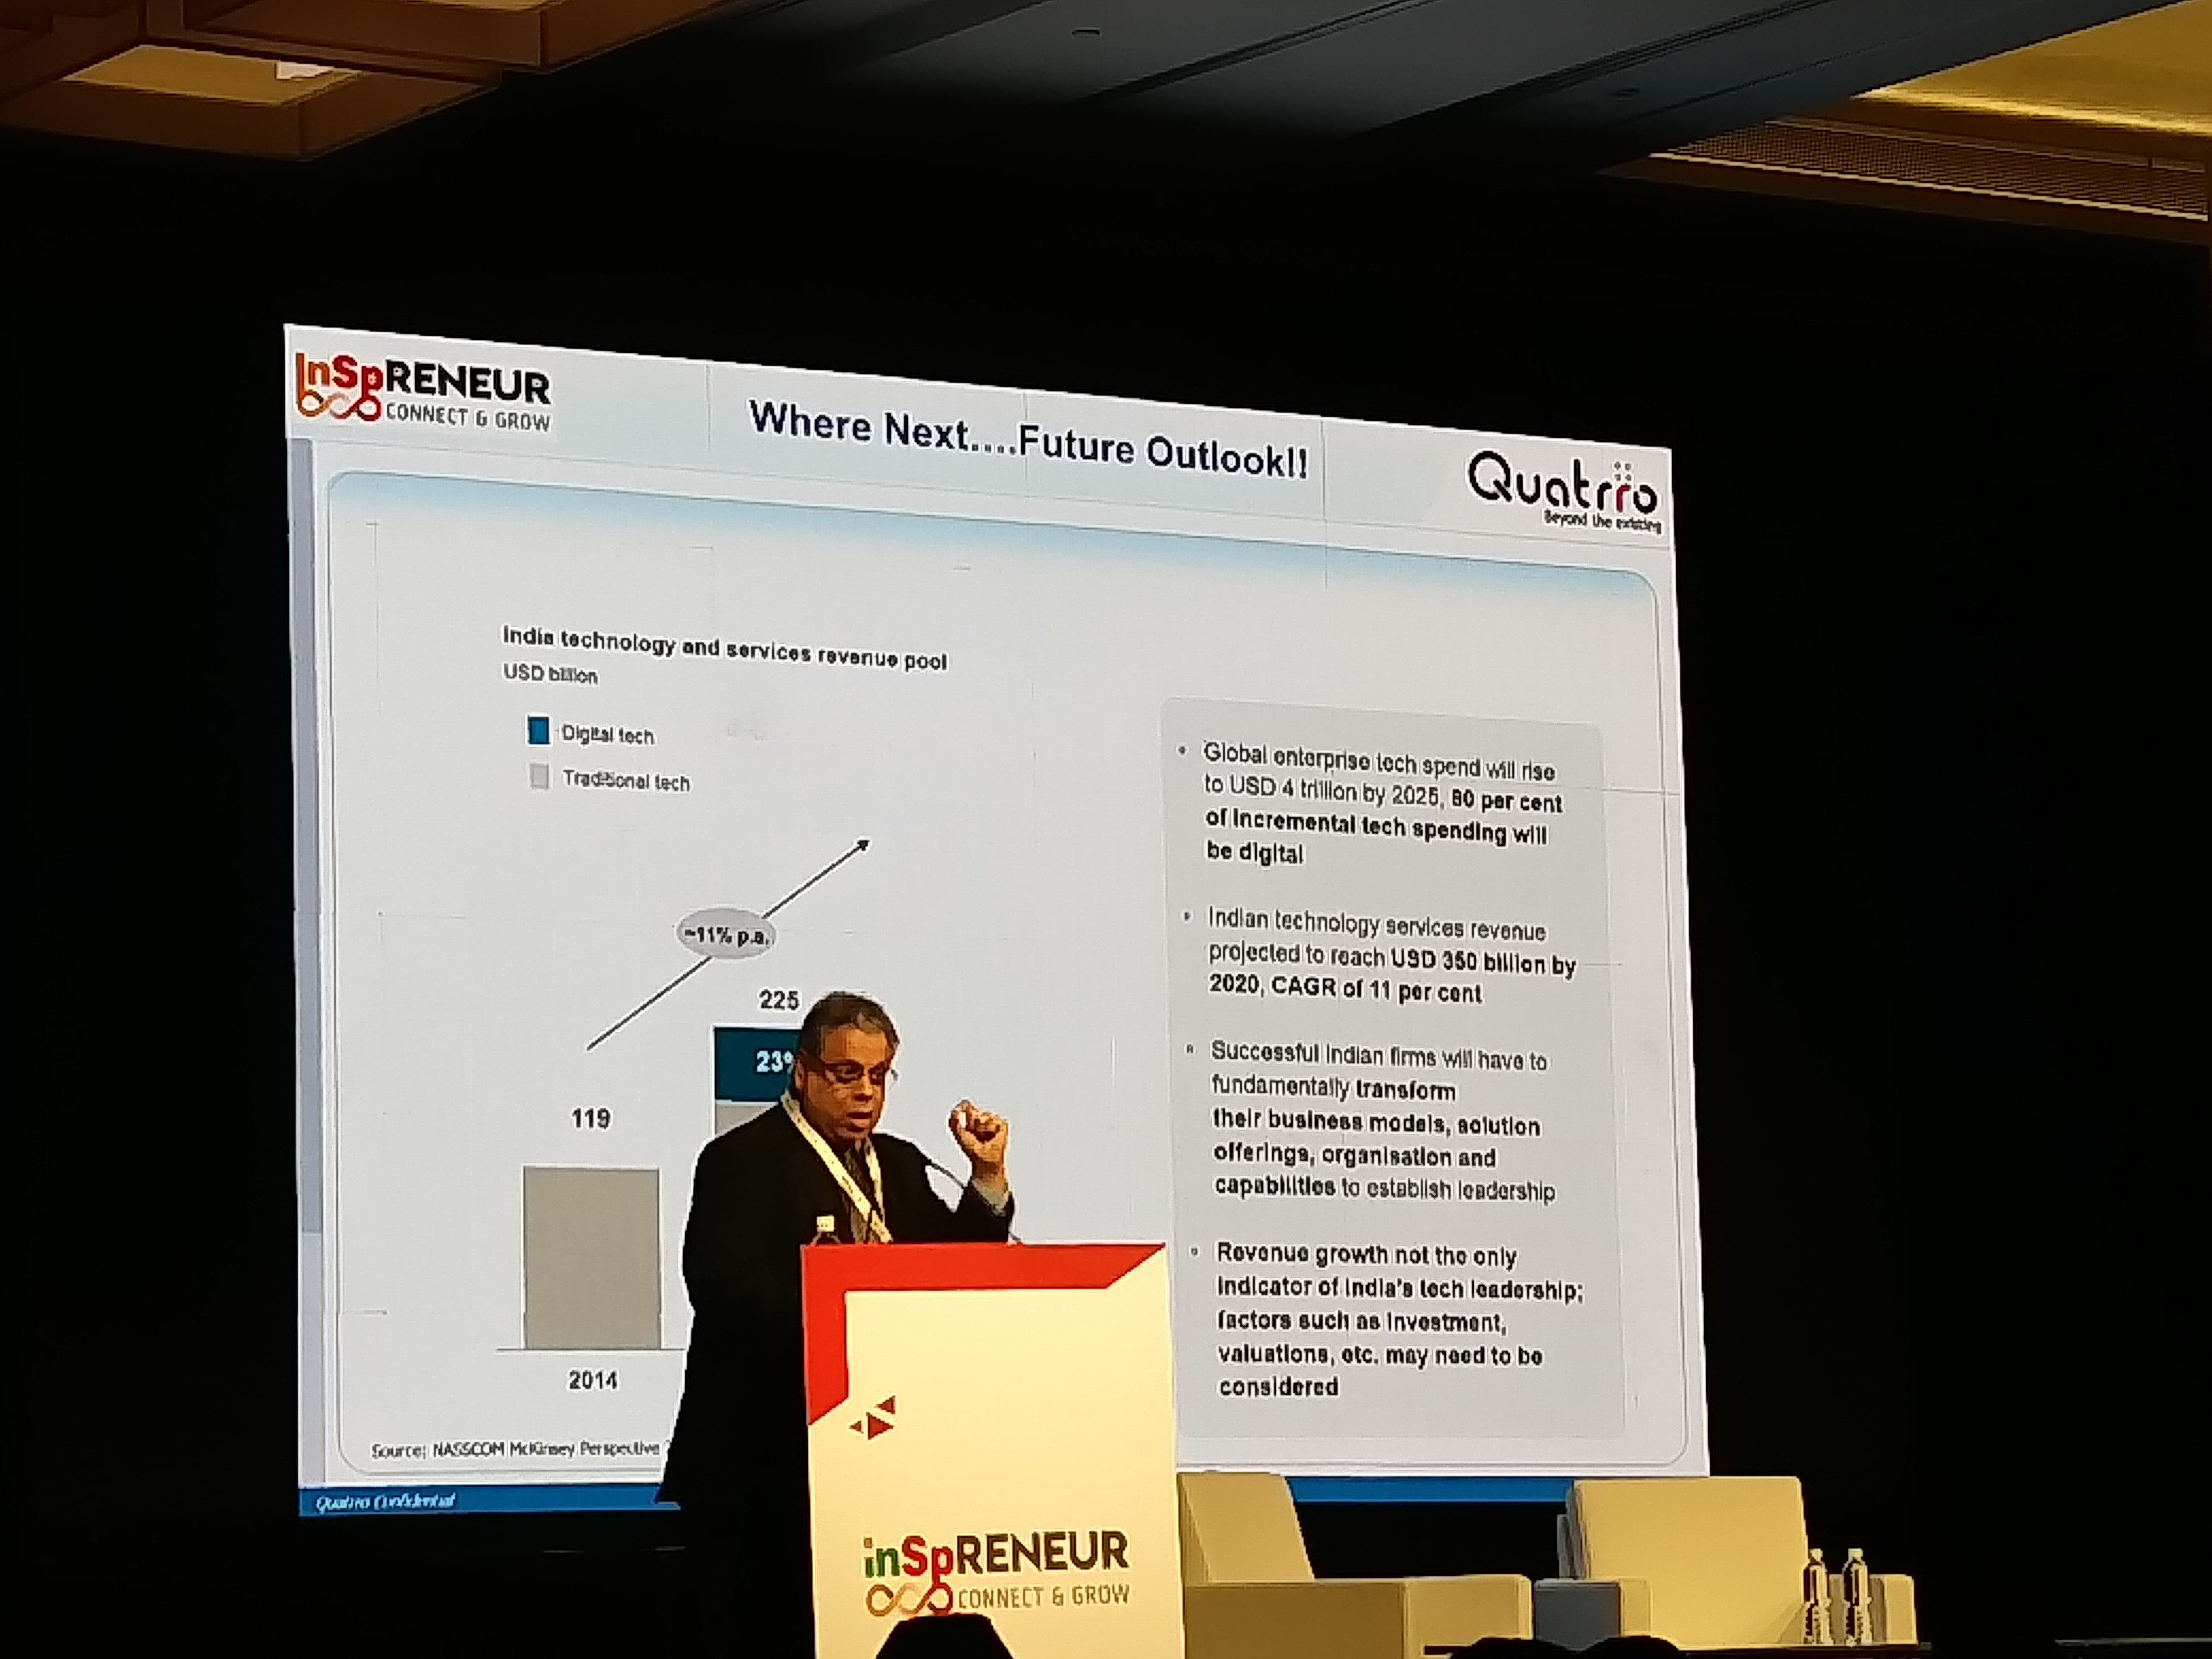 Raman Roy, Chairman, National Association of Software & Services Companies (NASSCOM), India delivered the keynote address. The MD and CEO of business and knowledge processing services firm Quatrro highlighted that India, the third largest startups market in the world, needs to reskill its workforce